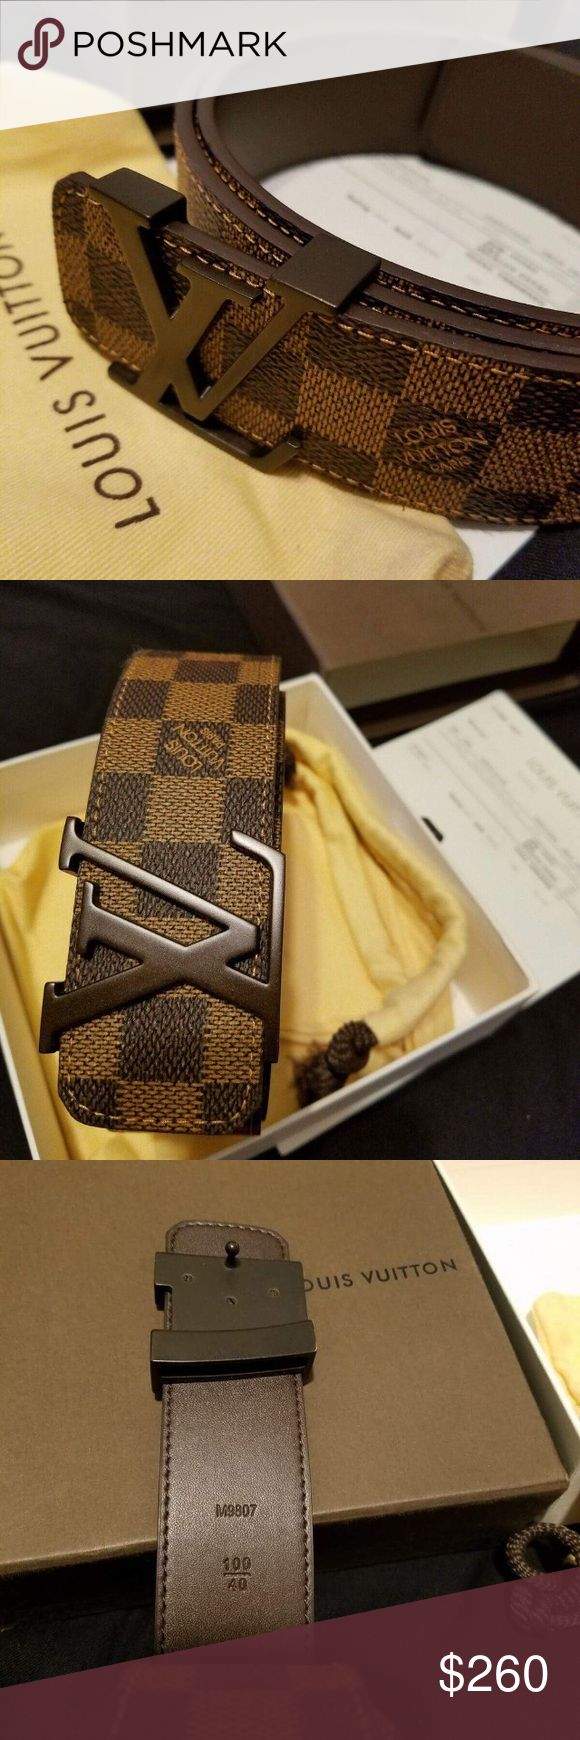 Louis Vuitton belt Damier Ebene Louis Vuitton  Belt. Brand New Belt comes with Box, Dust Bag, Tags, and Belt. I have different Sizes, so pick the right size for you, if you need help comment below and I will help you out. To confirm Authenticity check some Authenticity checking video and confirm with my pictures. I am telling you, so that you can shop with confidence. Thanks a lot for shopping with me. Also for faster replies feel free to text me at 347-901-8321 I only check this app at…